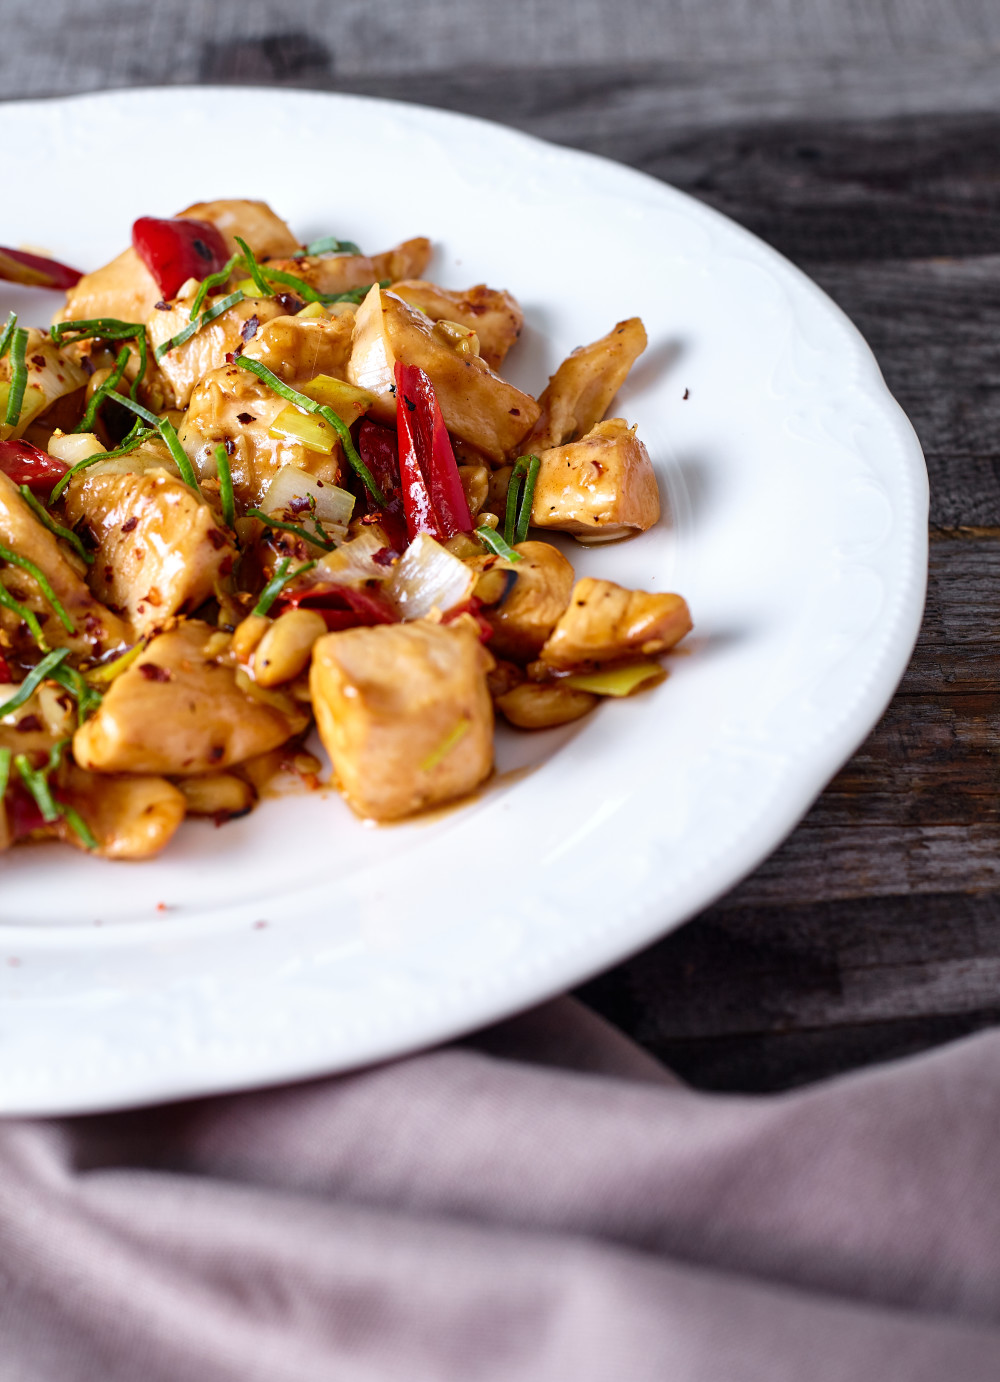 Put the dish on the serving plates for gongbao chicken (kung pao)